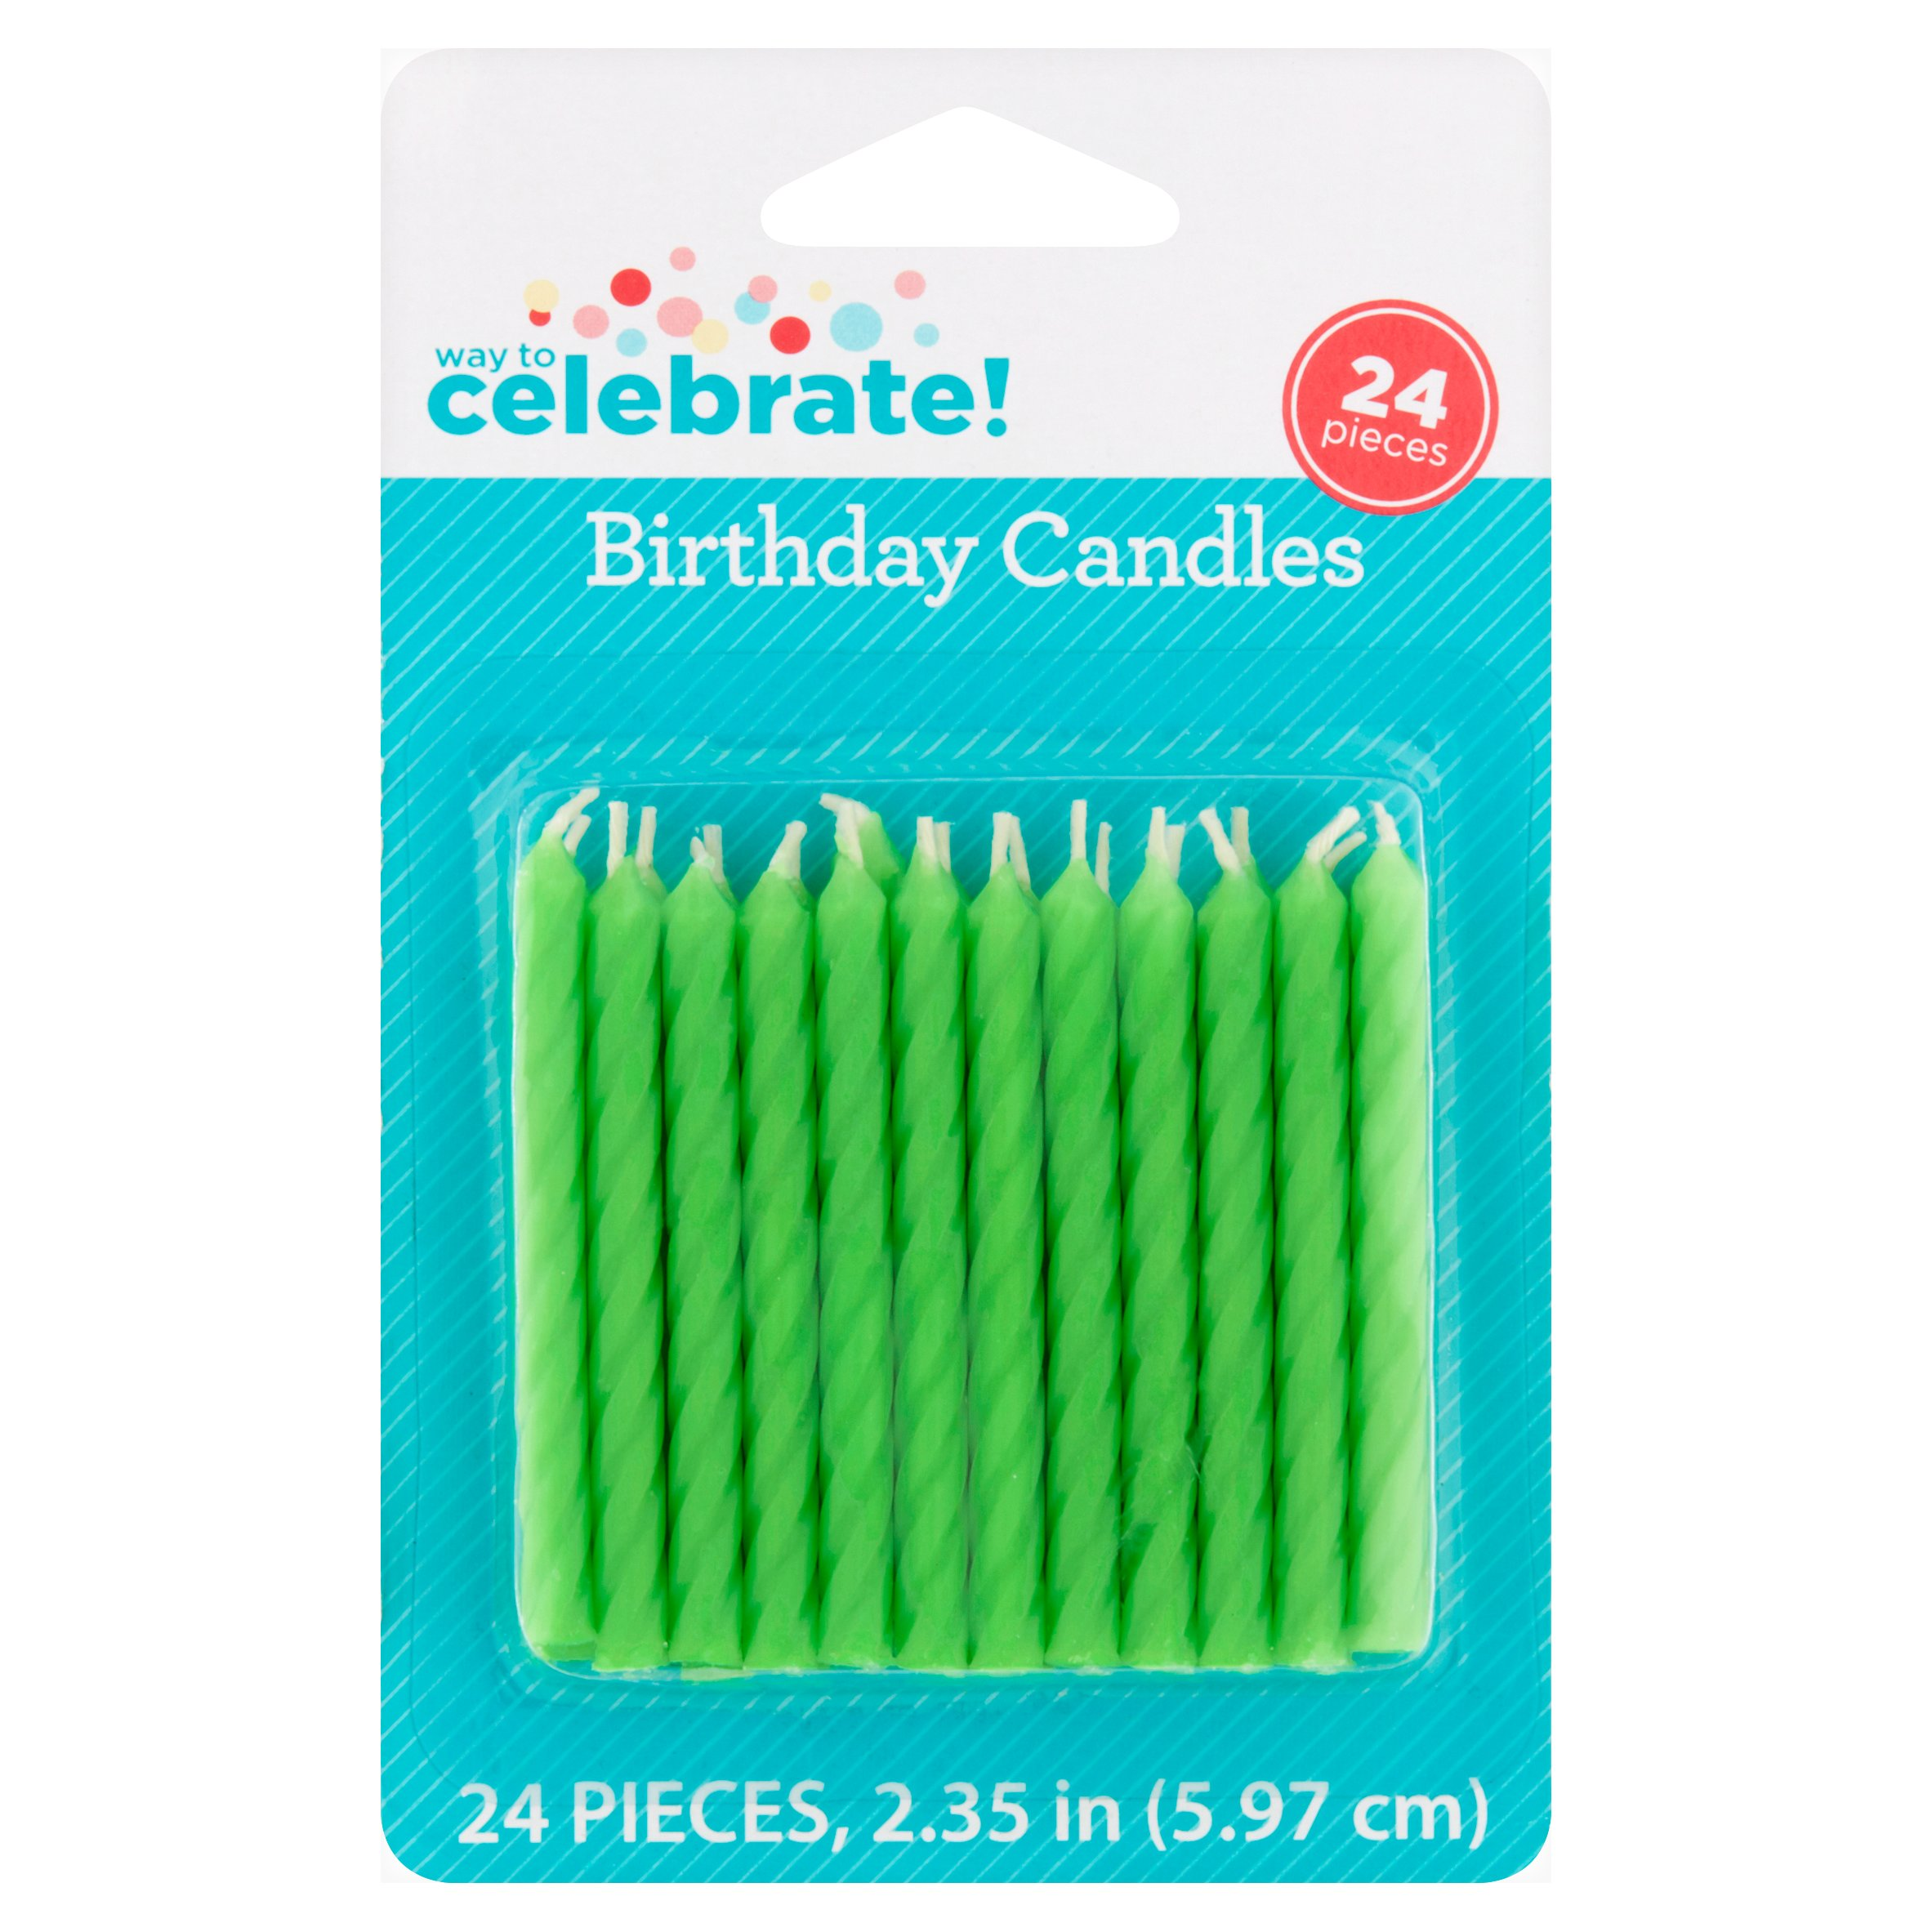 Way to Celebrate Birthday Candles Lime Green Walmartcom